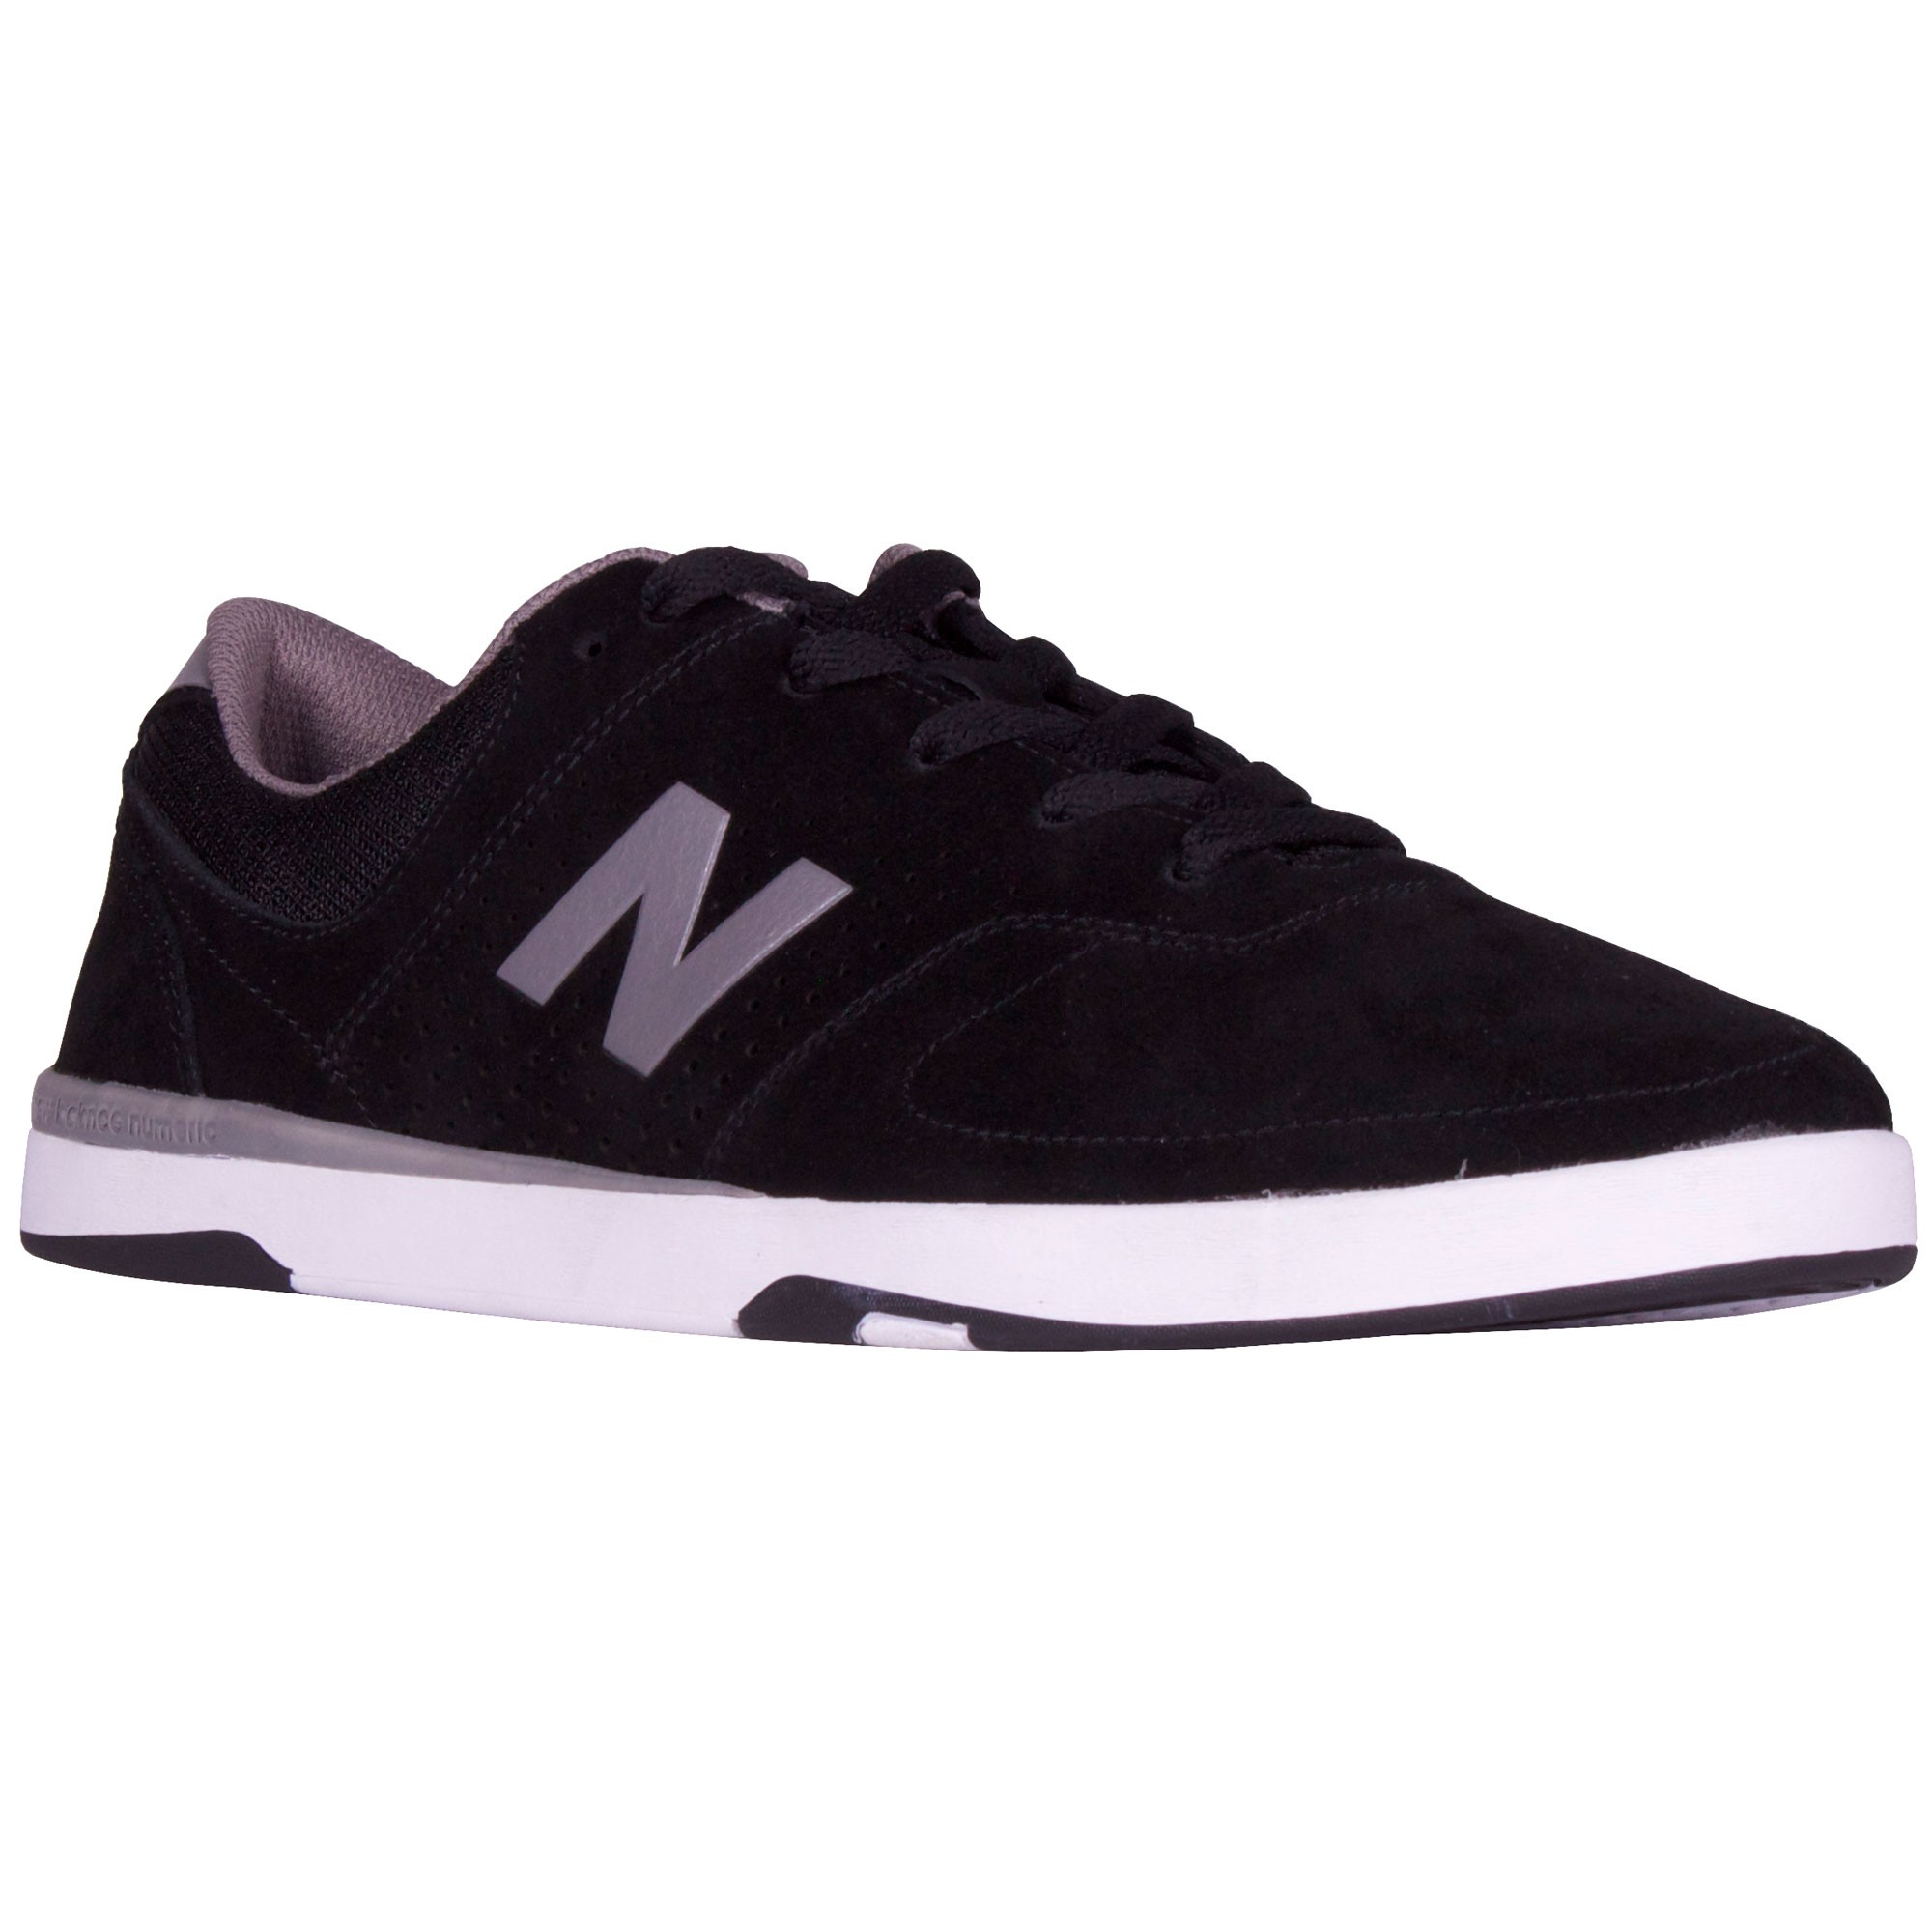 New Balance Stratford 479 Shoes - Black / Micro Grey